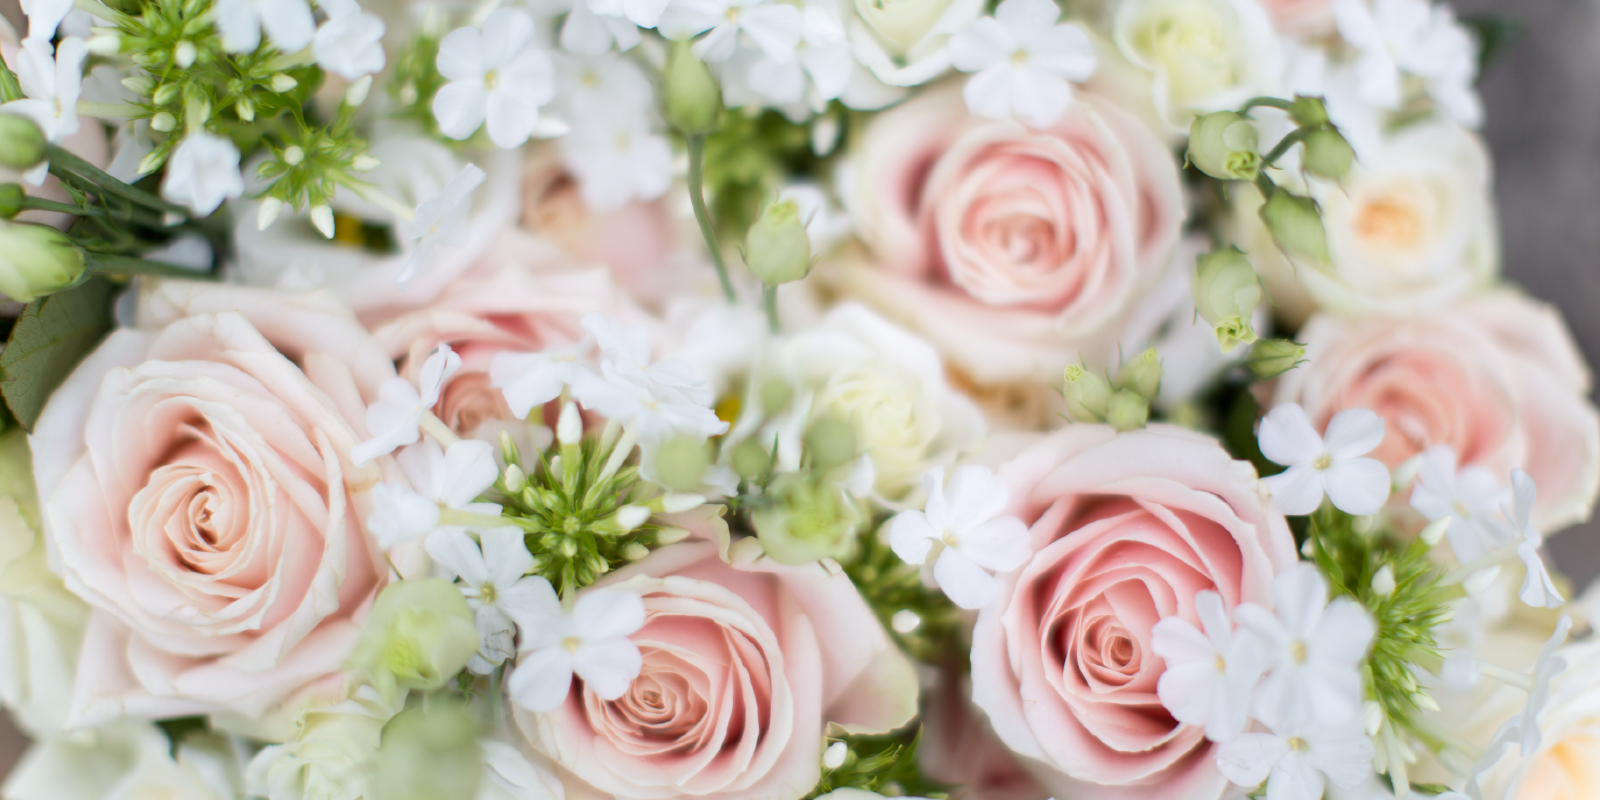 Three wedding flowers and their unexpected meanings